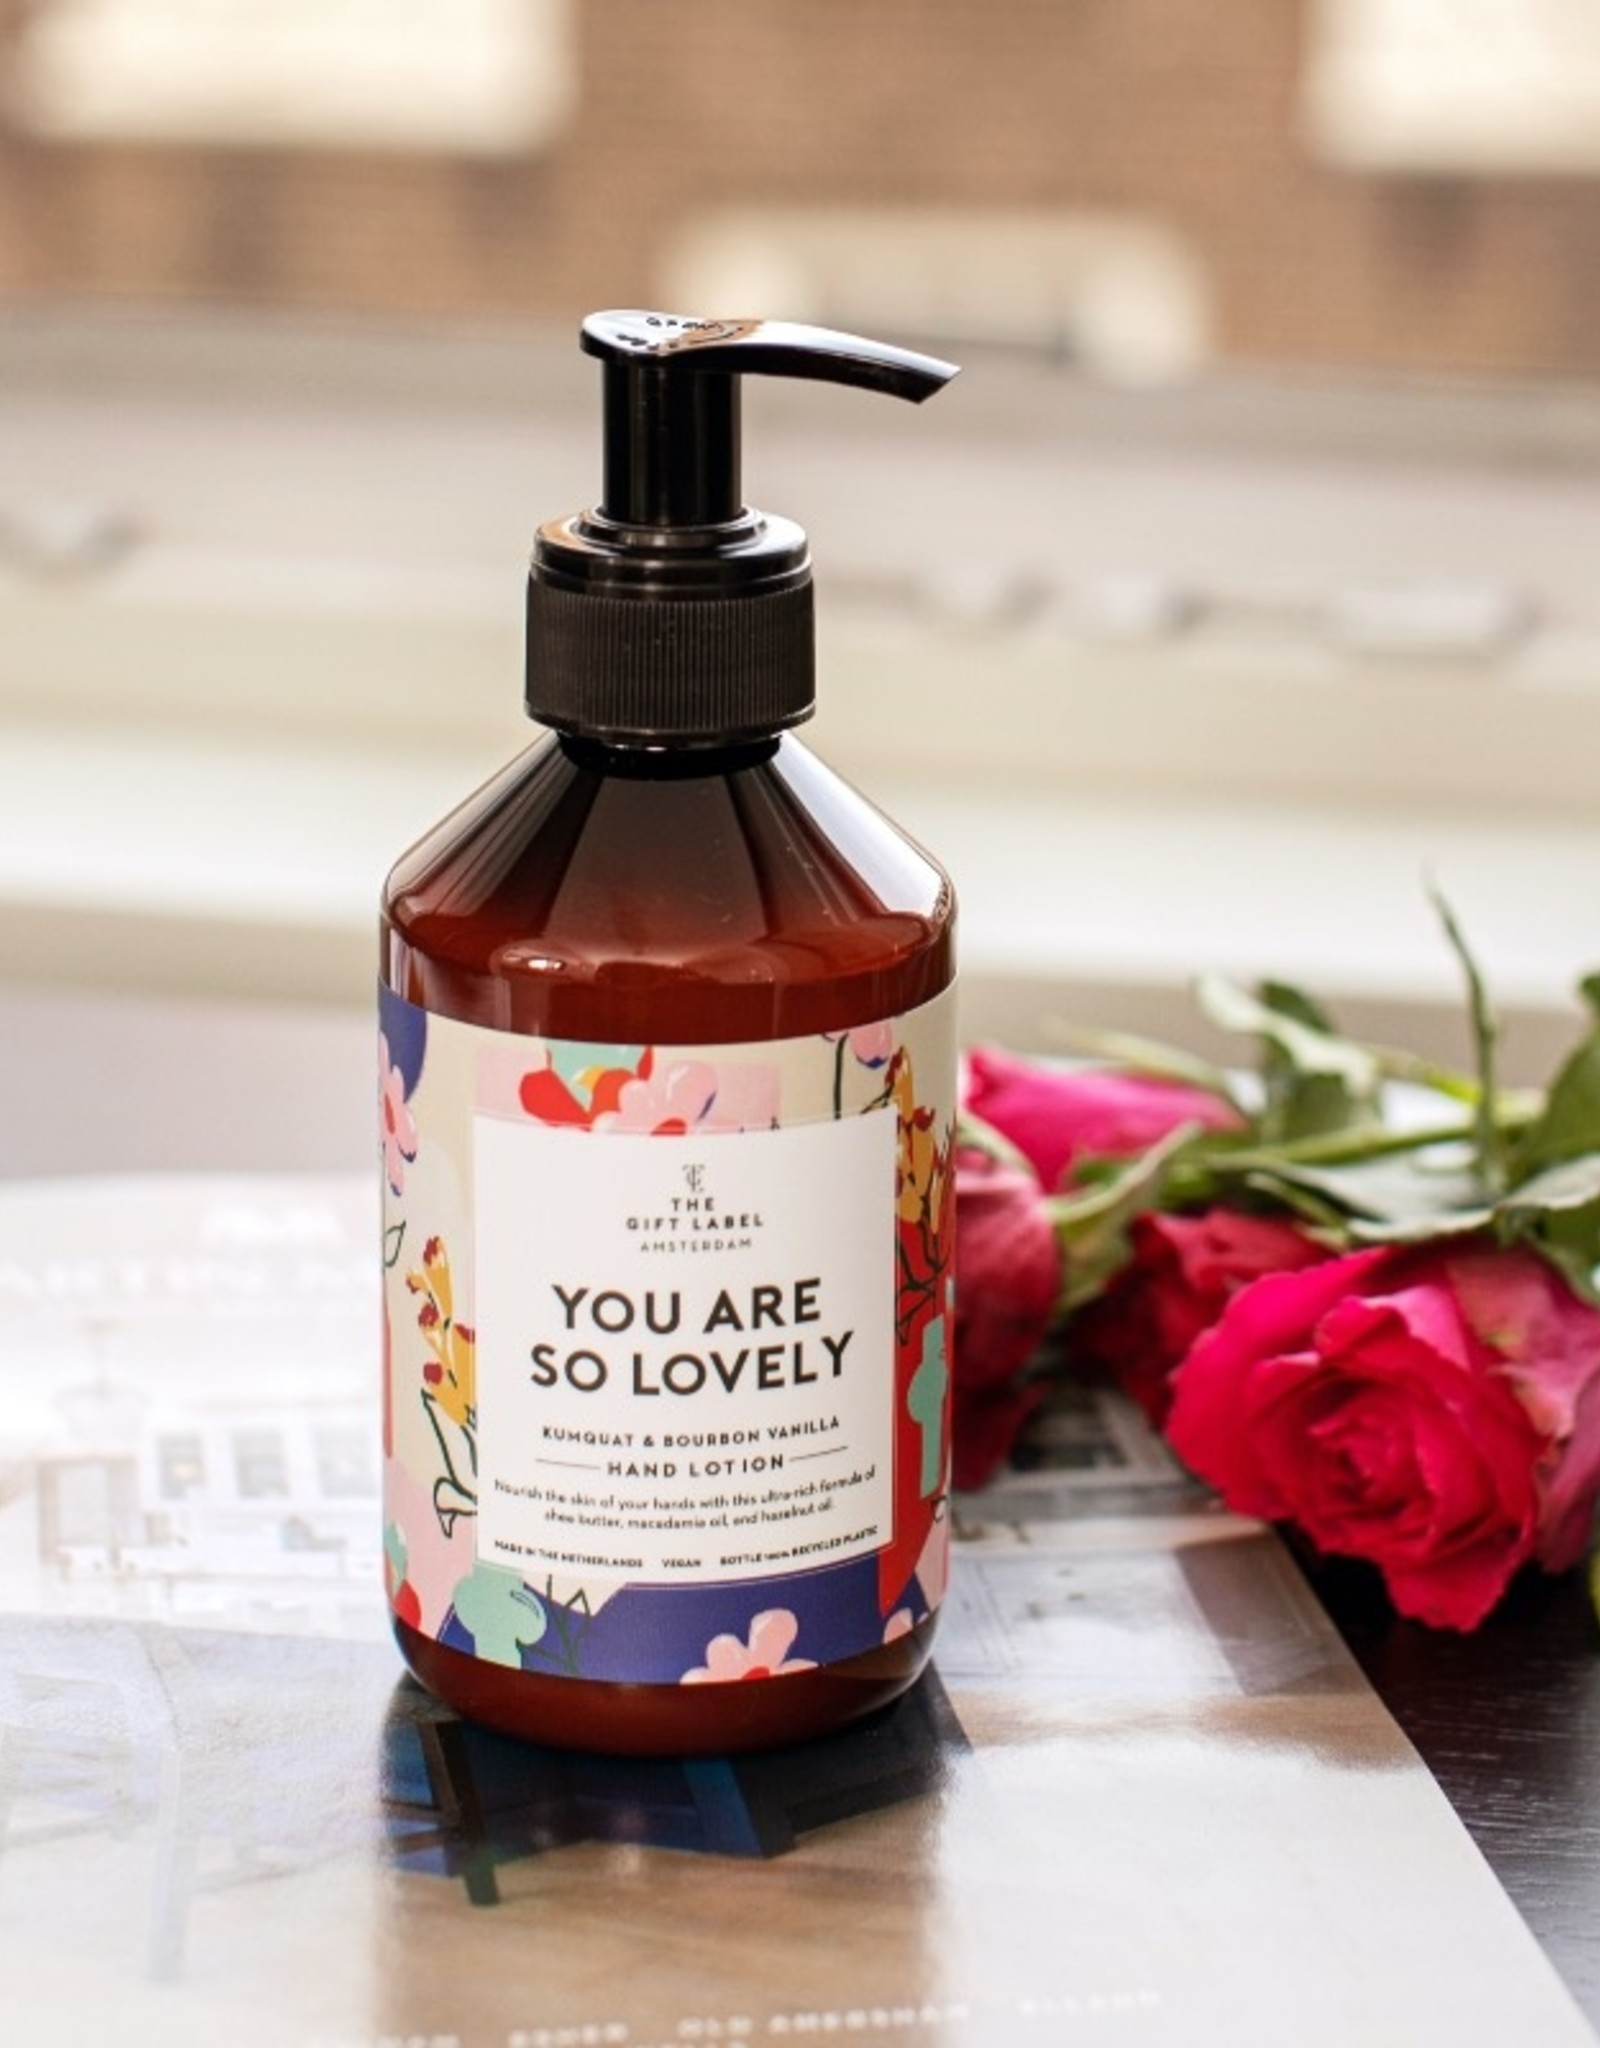 The Gift Label Handlotion-You are so lovely